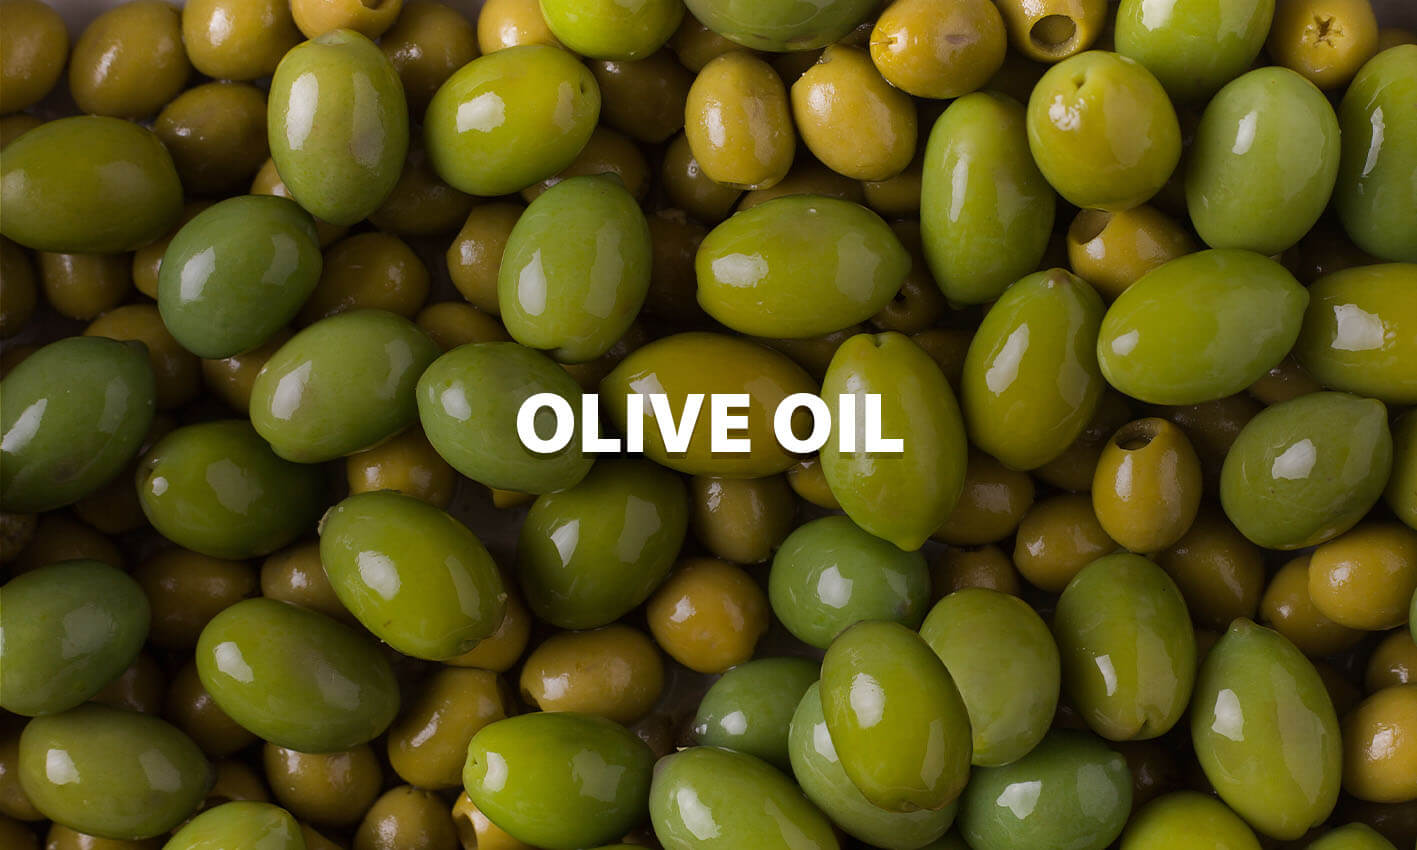 Olive Oil has a conditioning effect